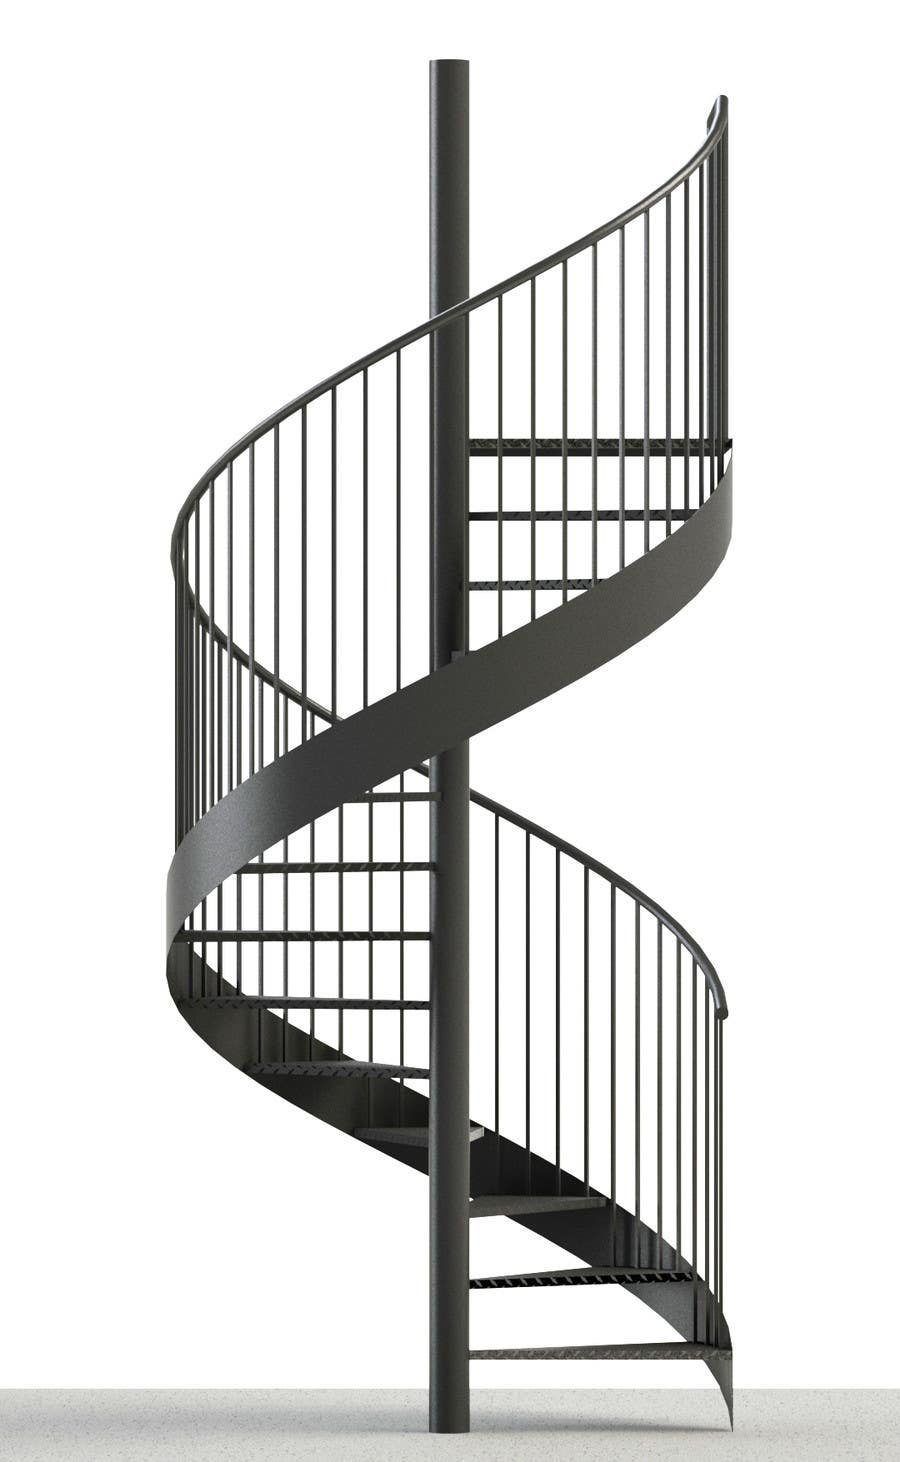 Spiral staircase drawing in solid works freelancer for Spiral stair dwg